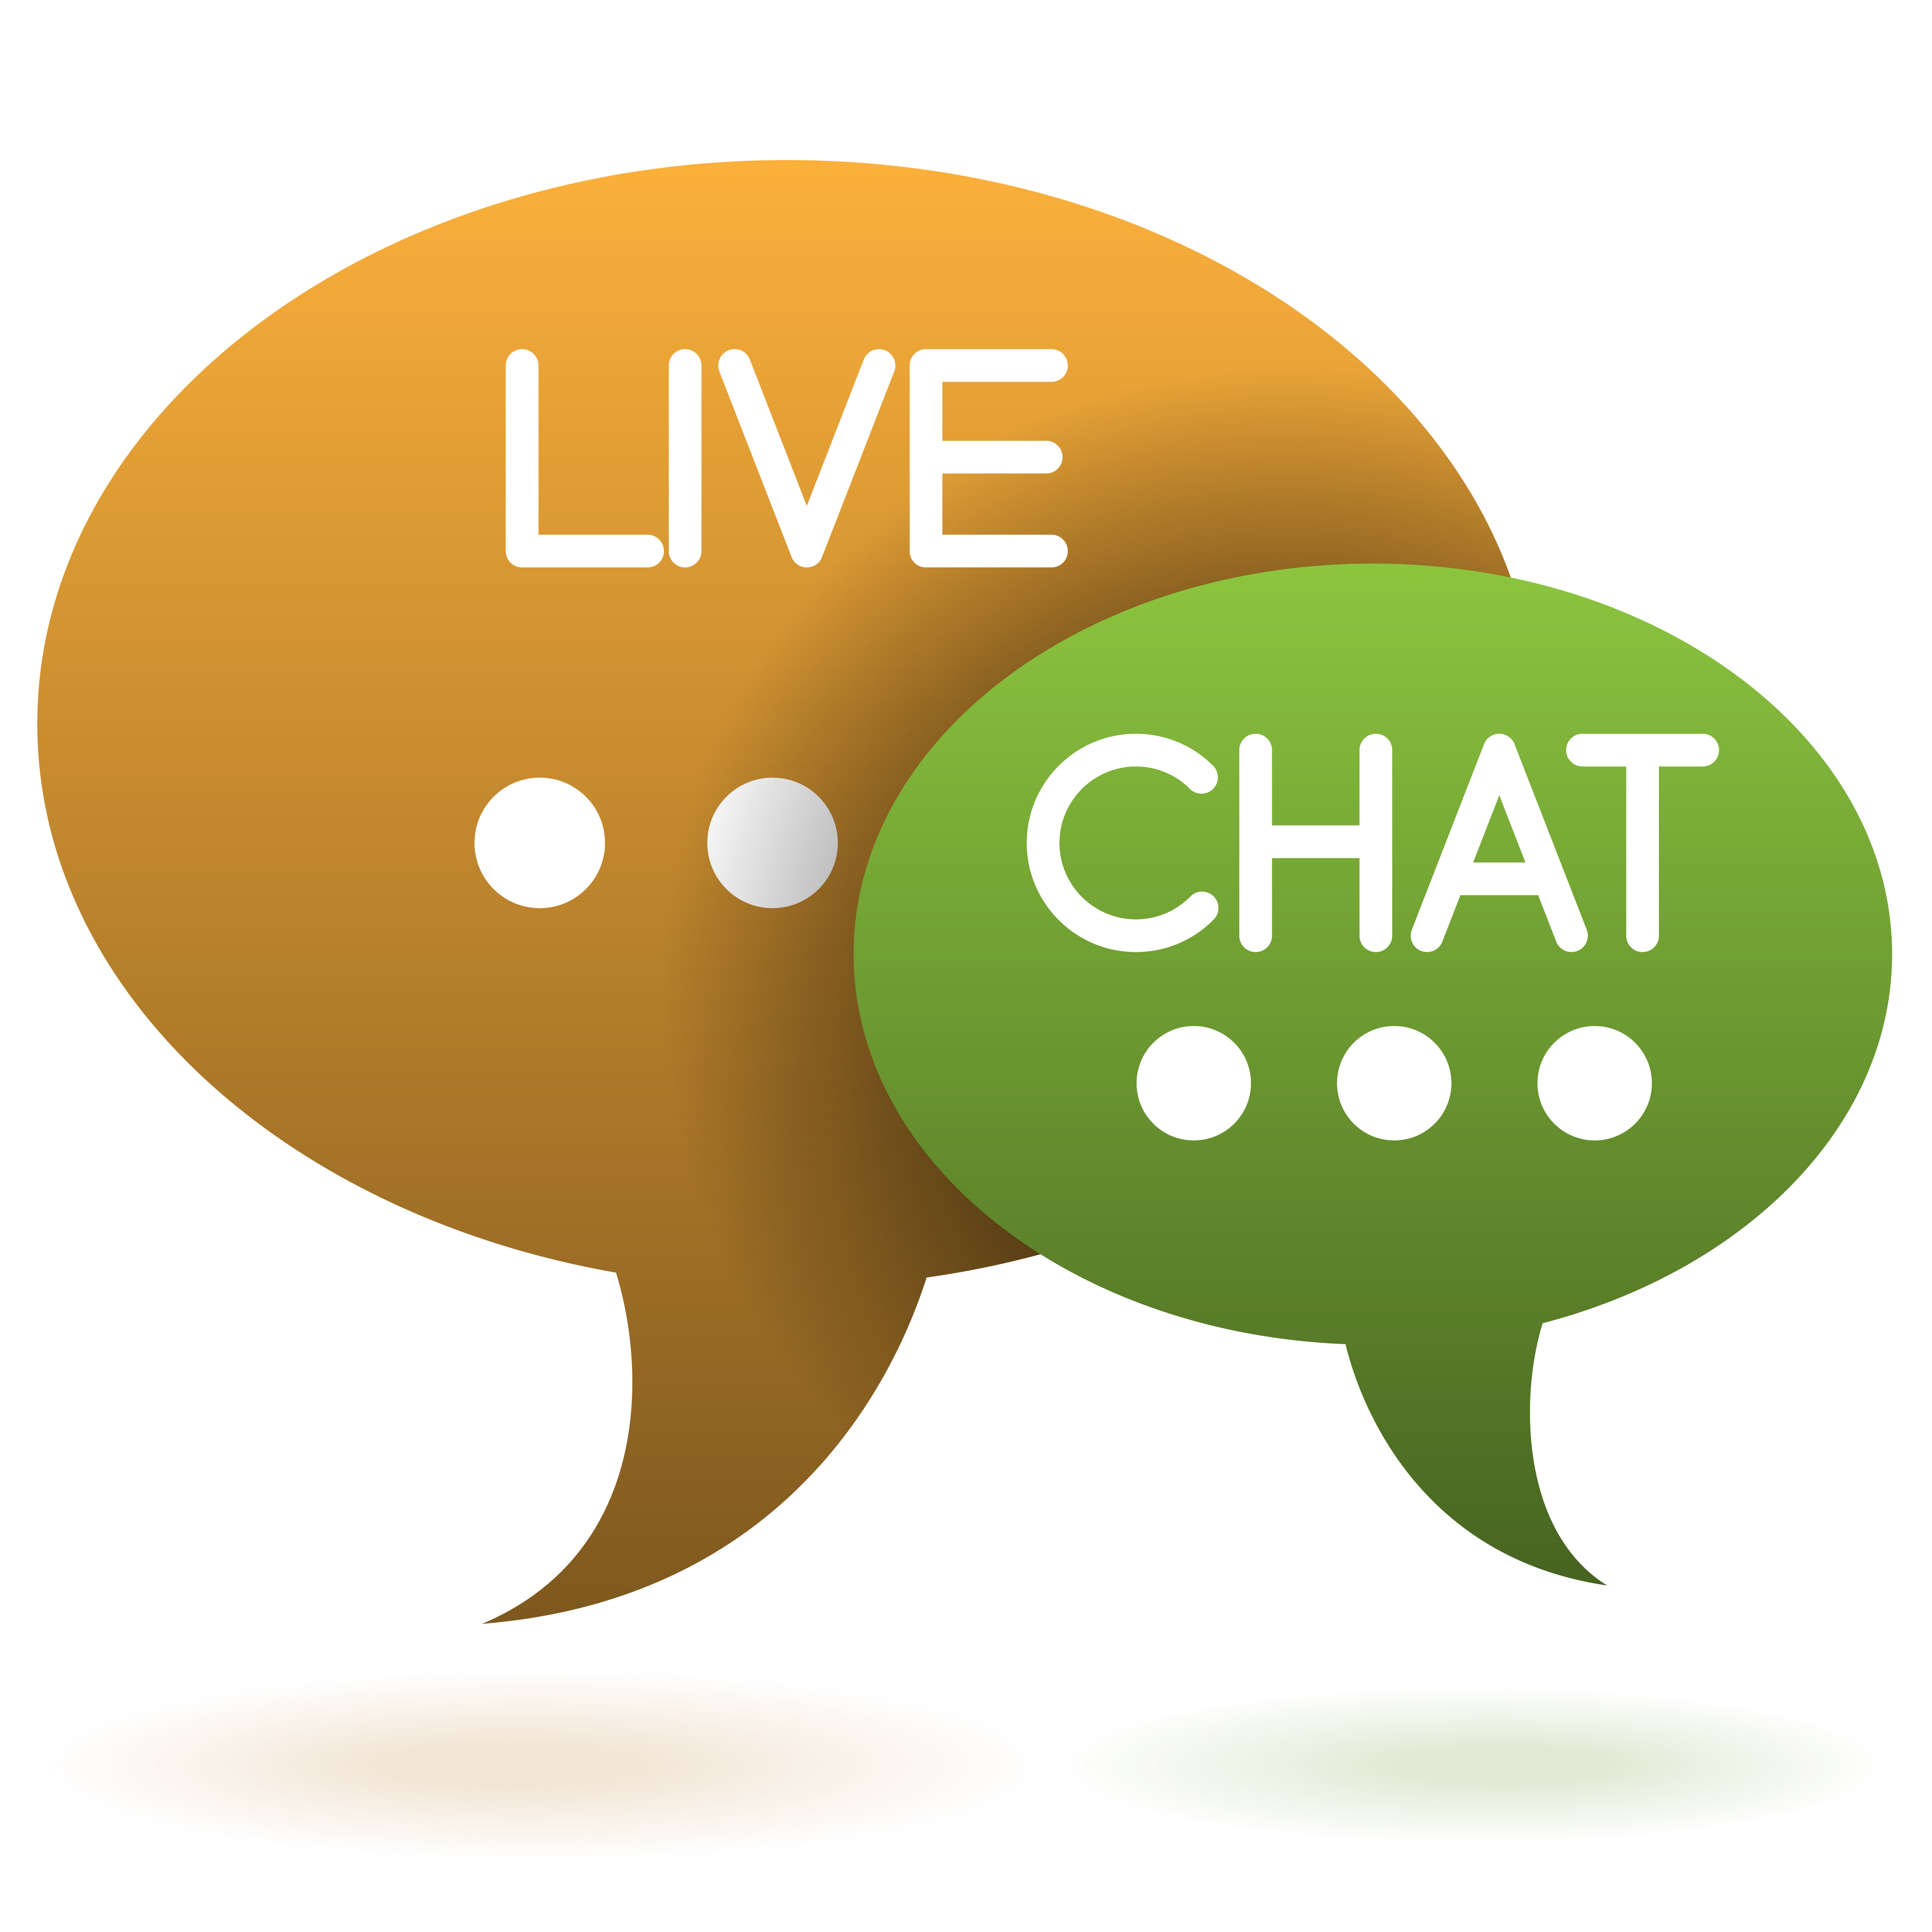 Live Chat Clipart Mobile Chat-Live Chat Clipart mobile chat-12